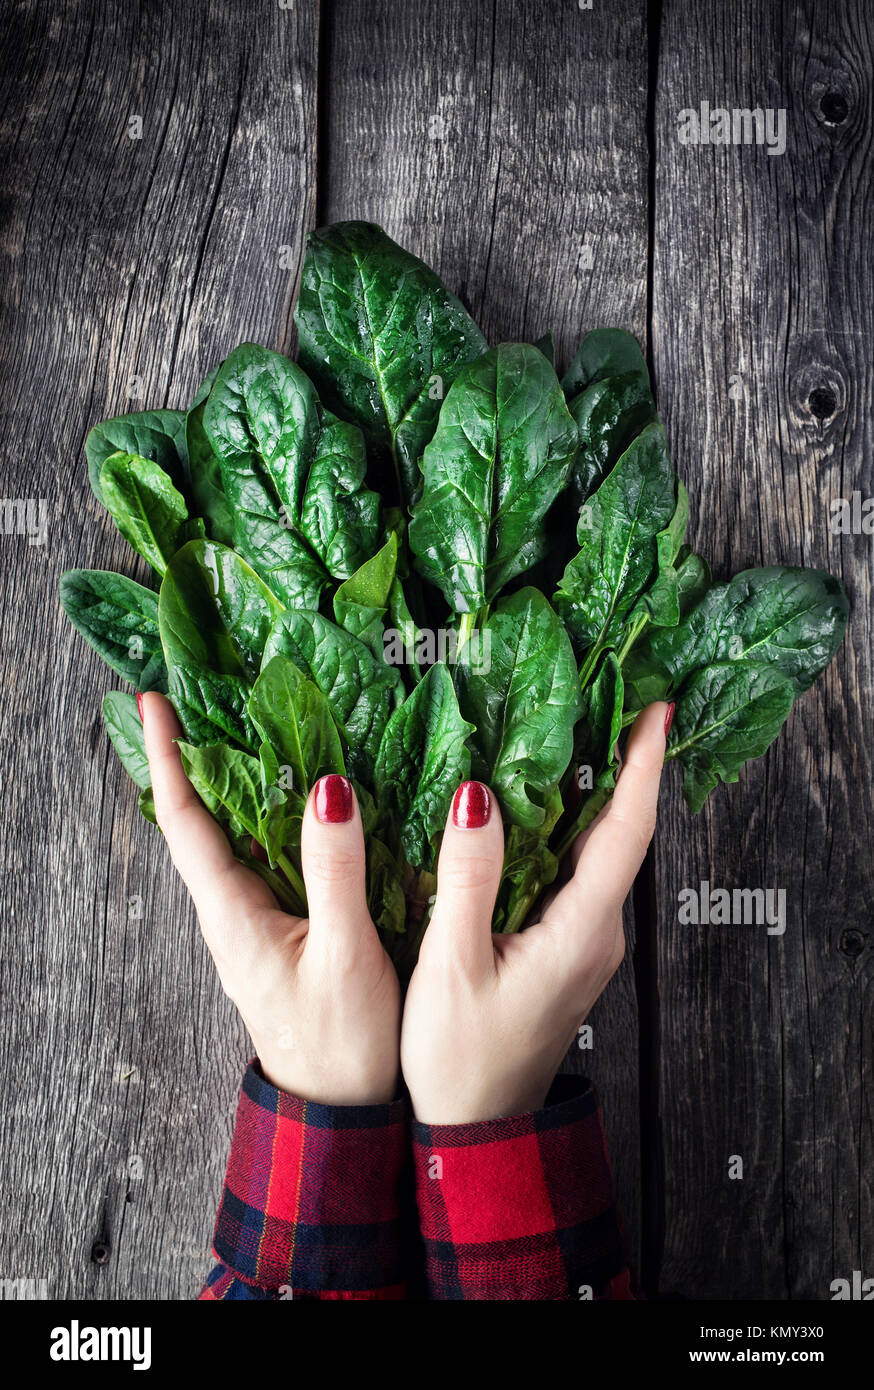 Woman in red holding fresh green spinach on rustic wooden background - Stock Image